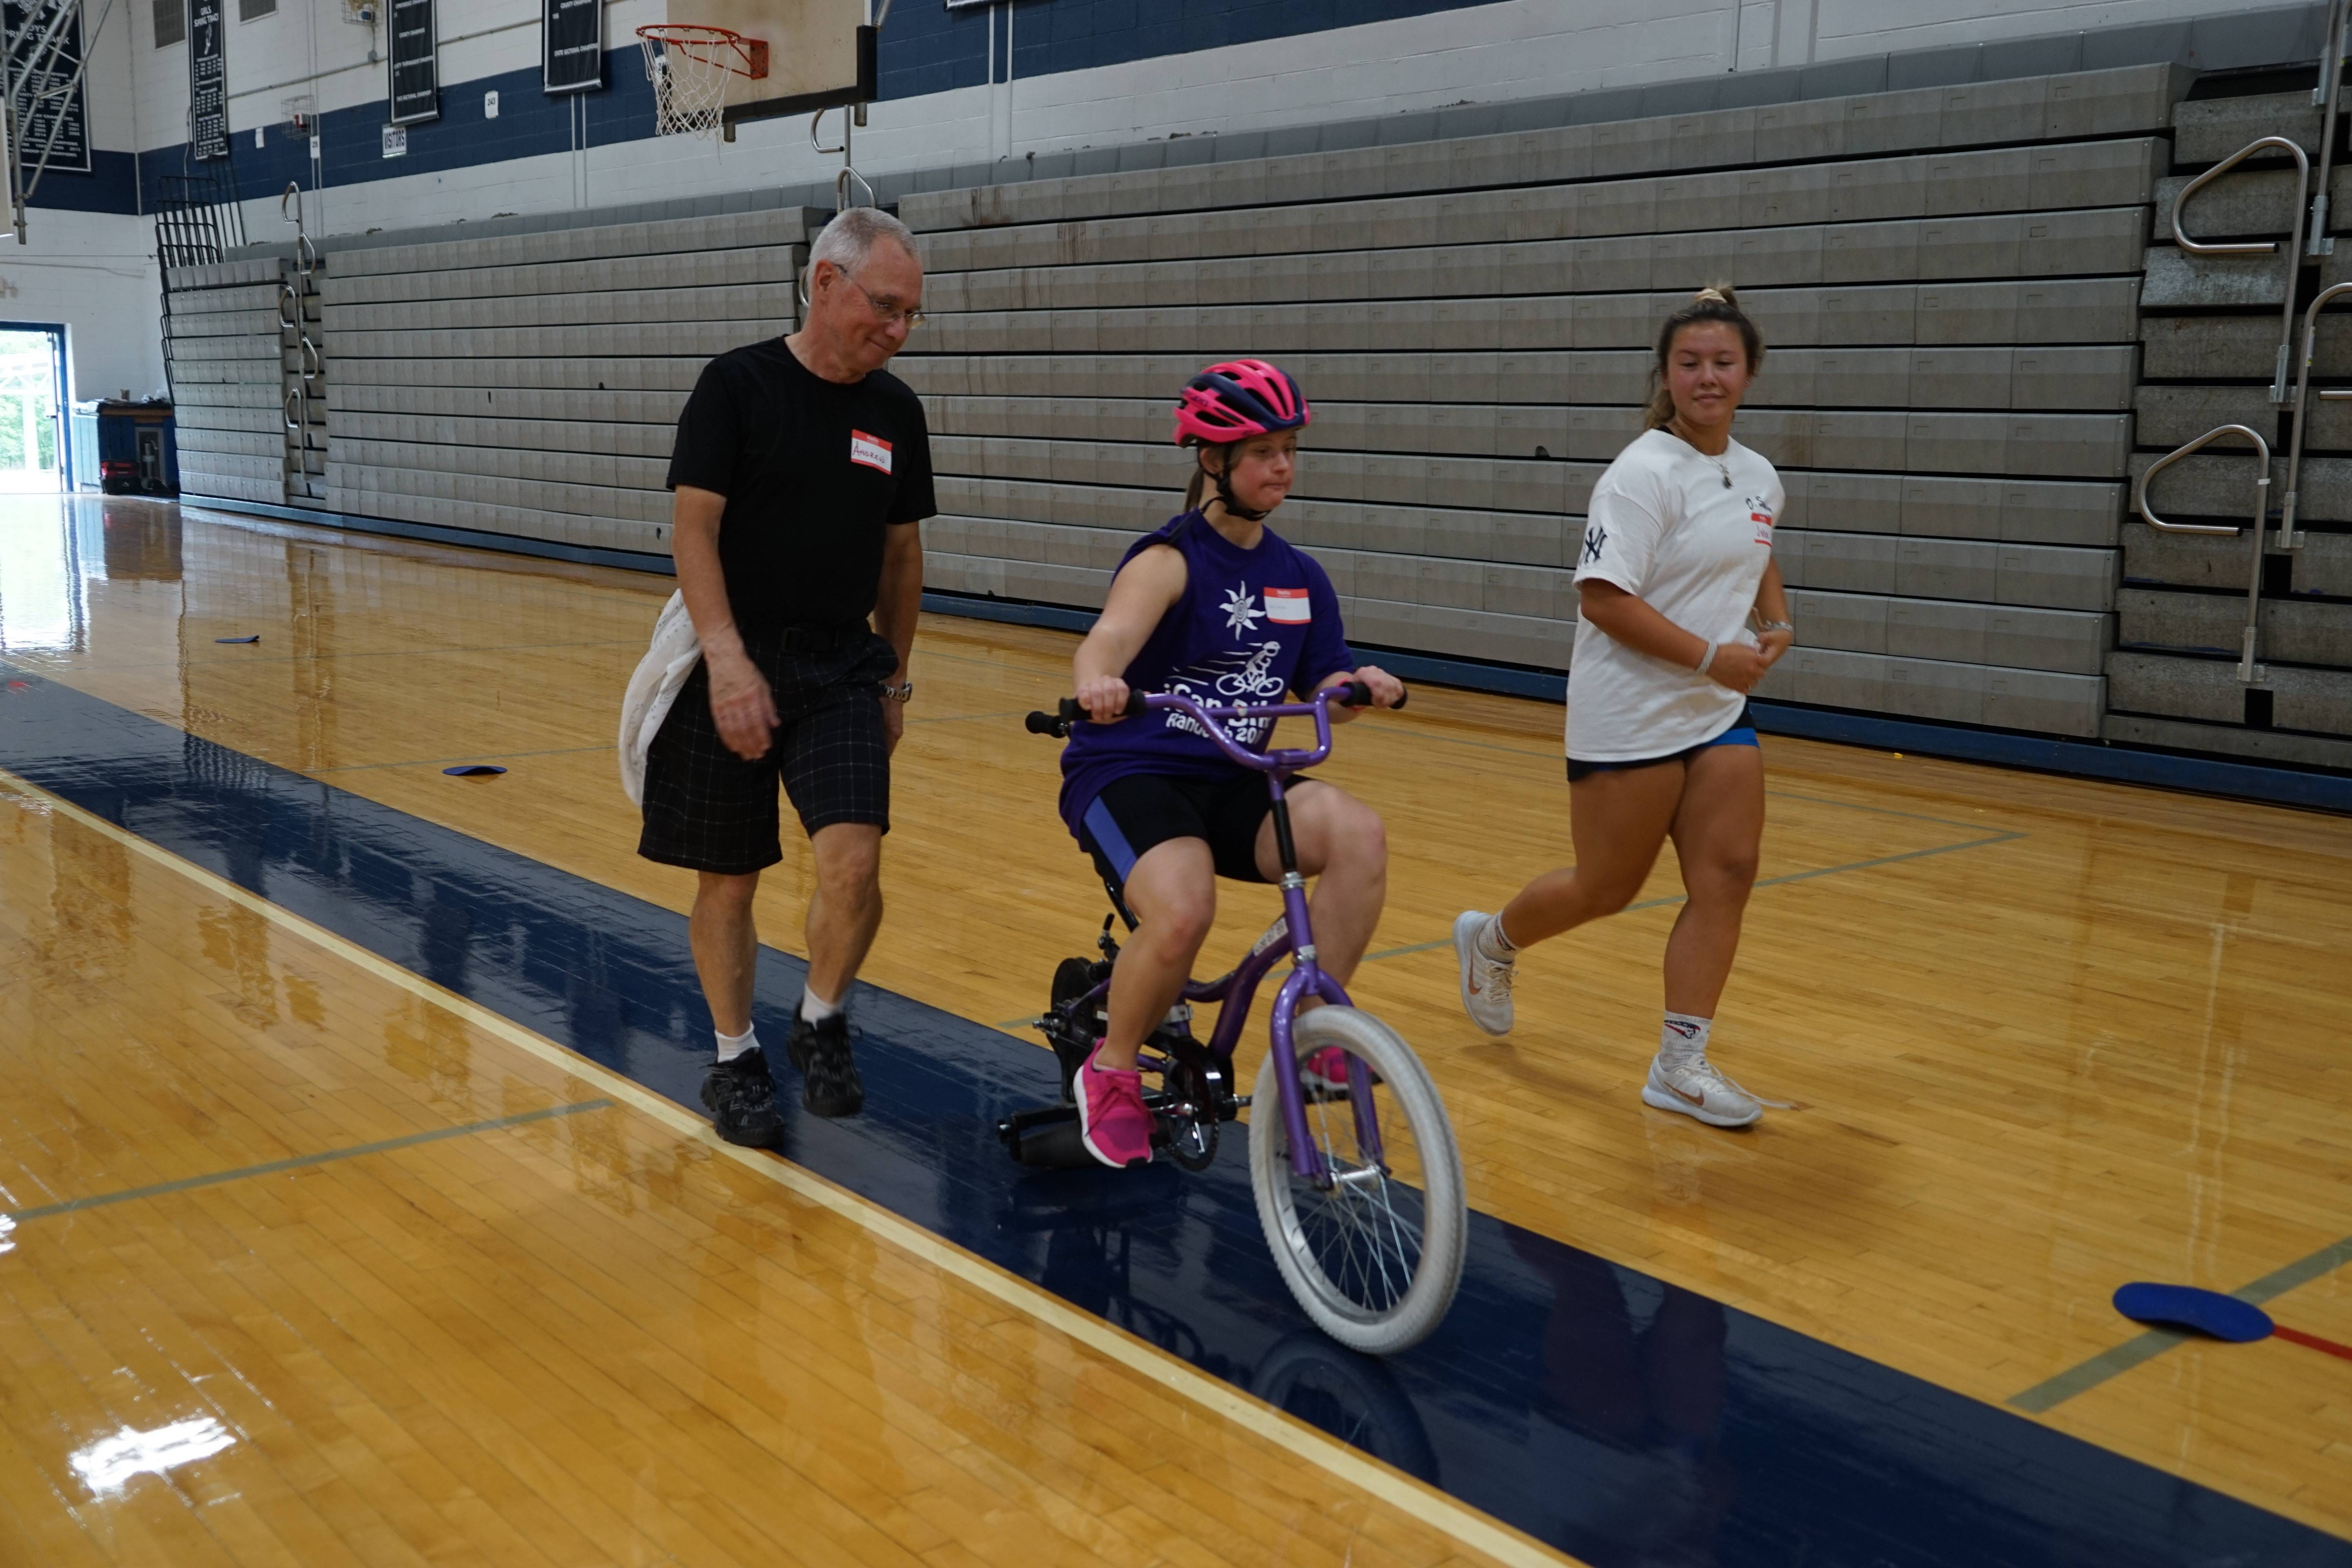 Randolph High School Comes To The Rescue; Hosts Bike Camp For  People With Disabilities